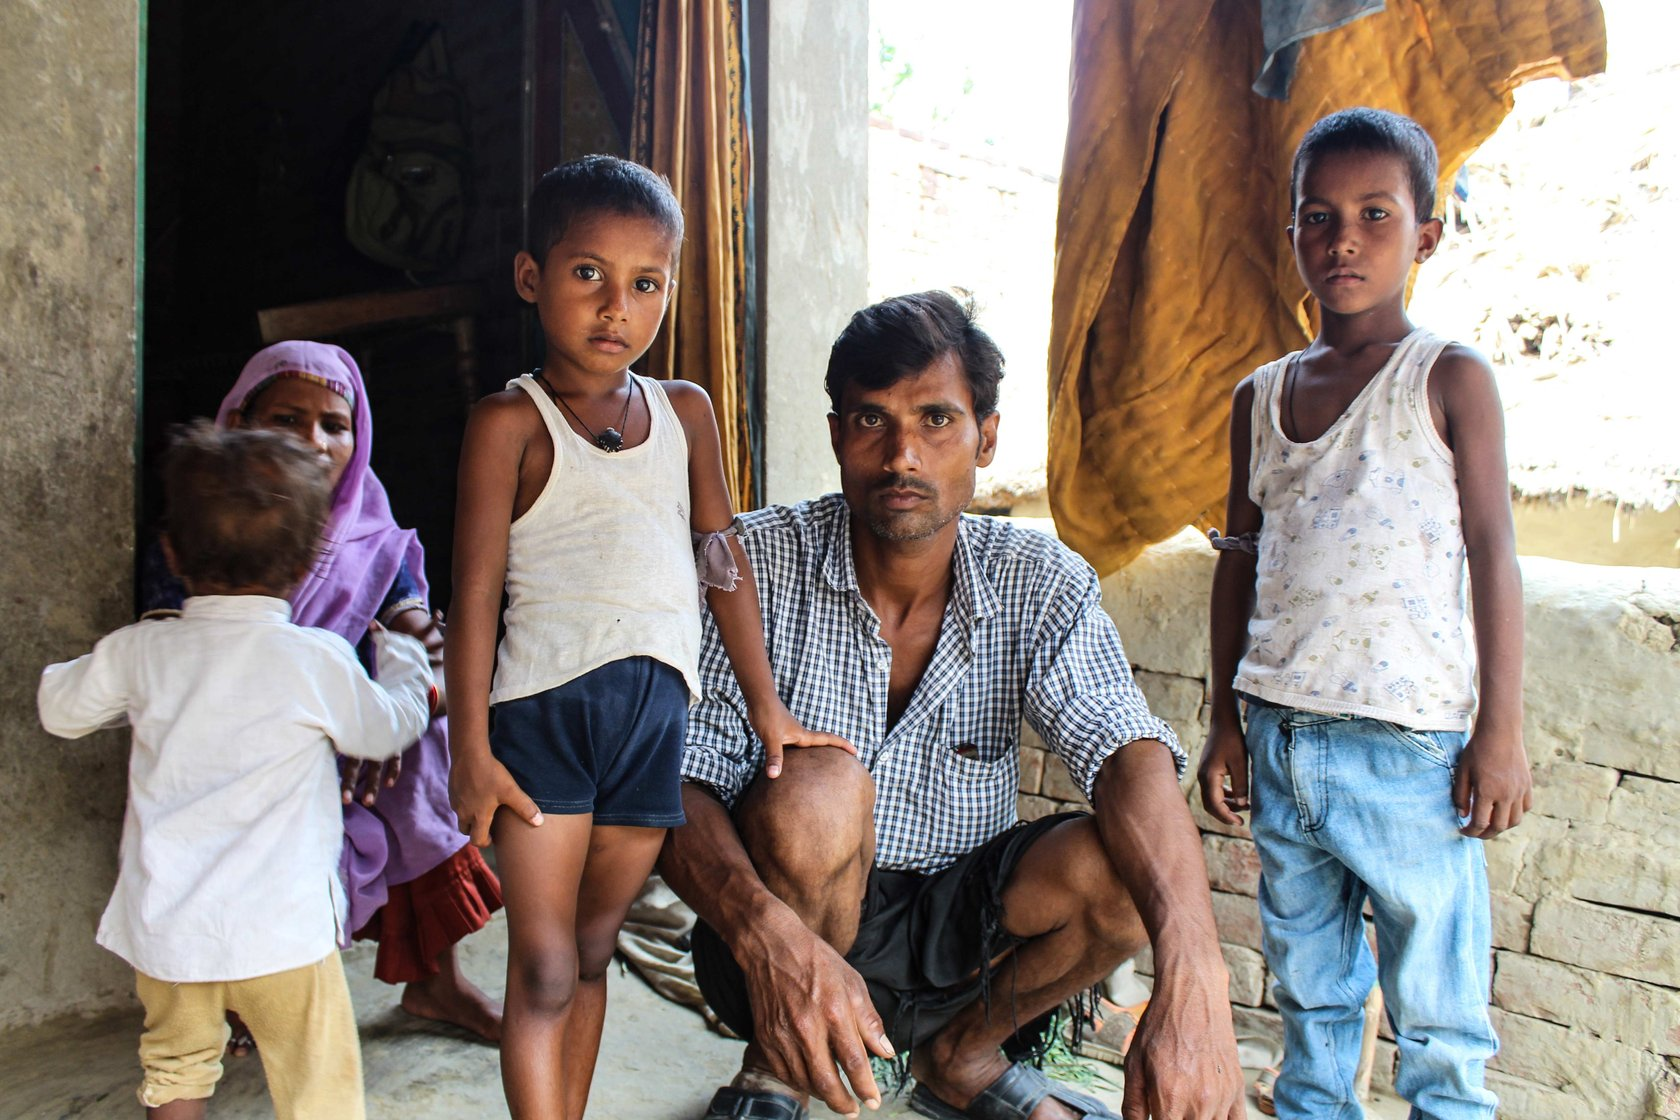 Pramod Kumar, Meenu Devi and their three children outside their house in Dadeora village of Uttar Pradesh